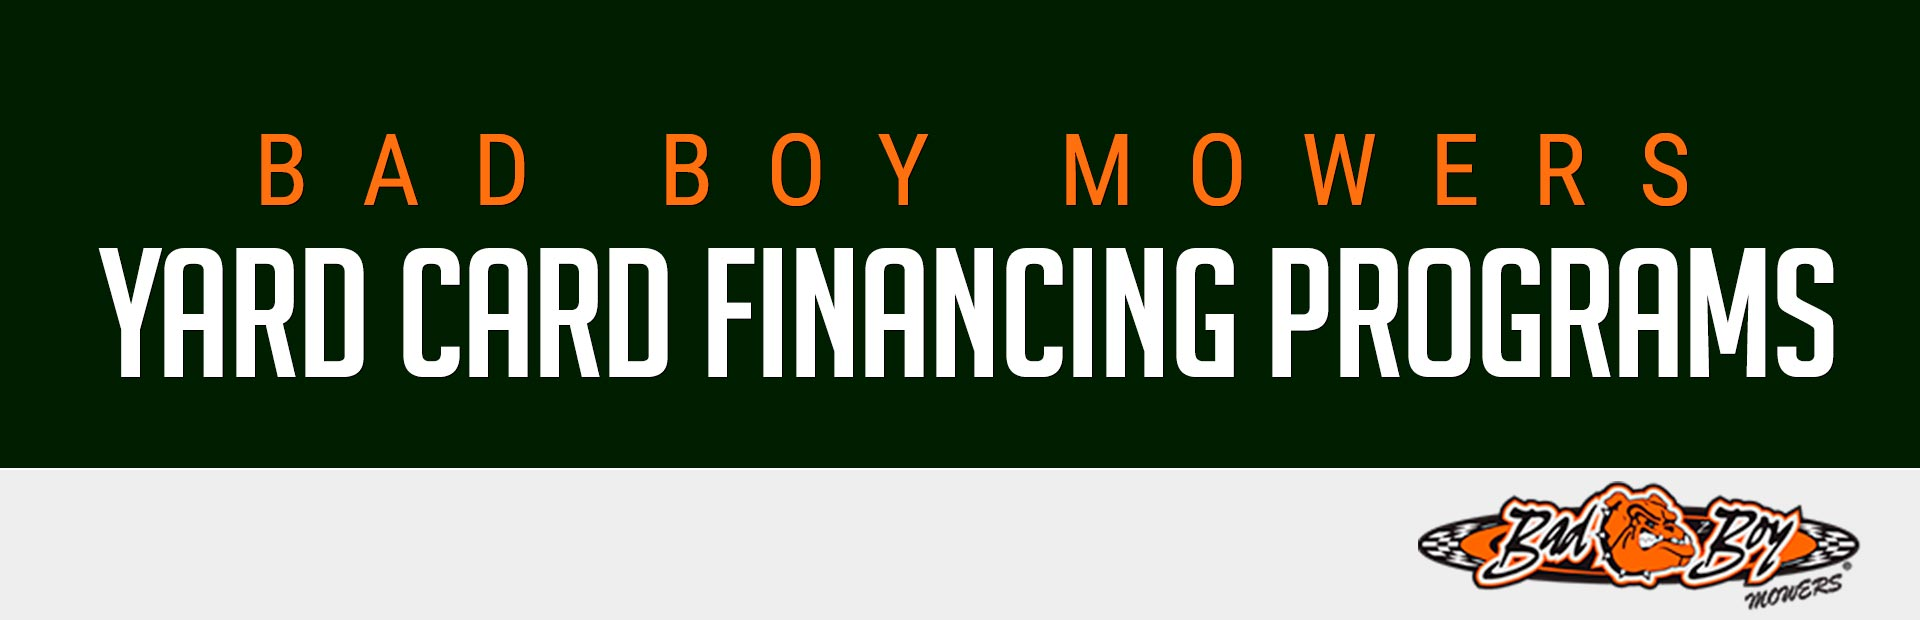 Bad Boy: Bad Boy Mowers – Yard Card Financing Programs